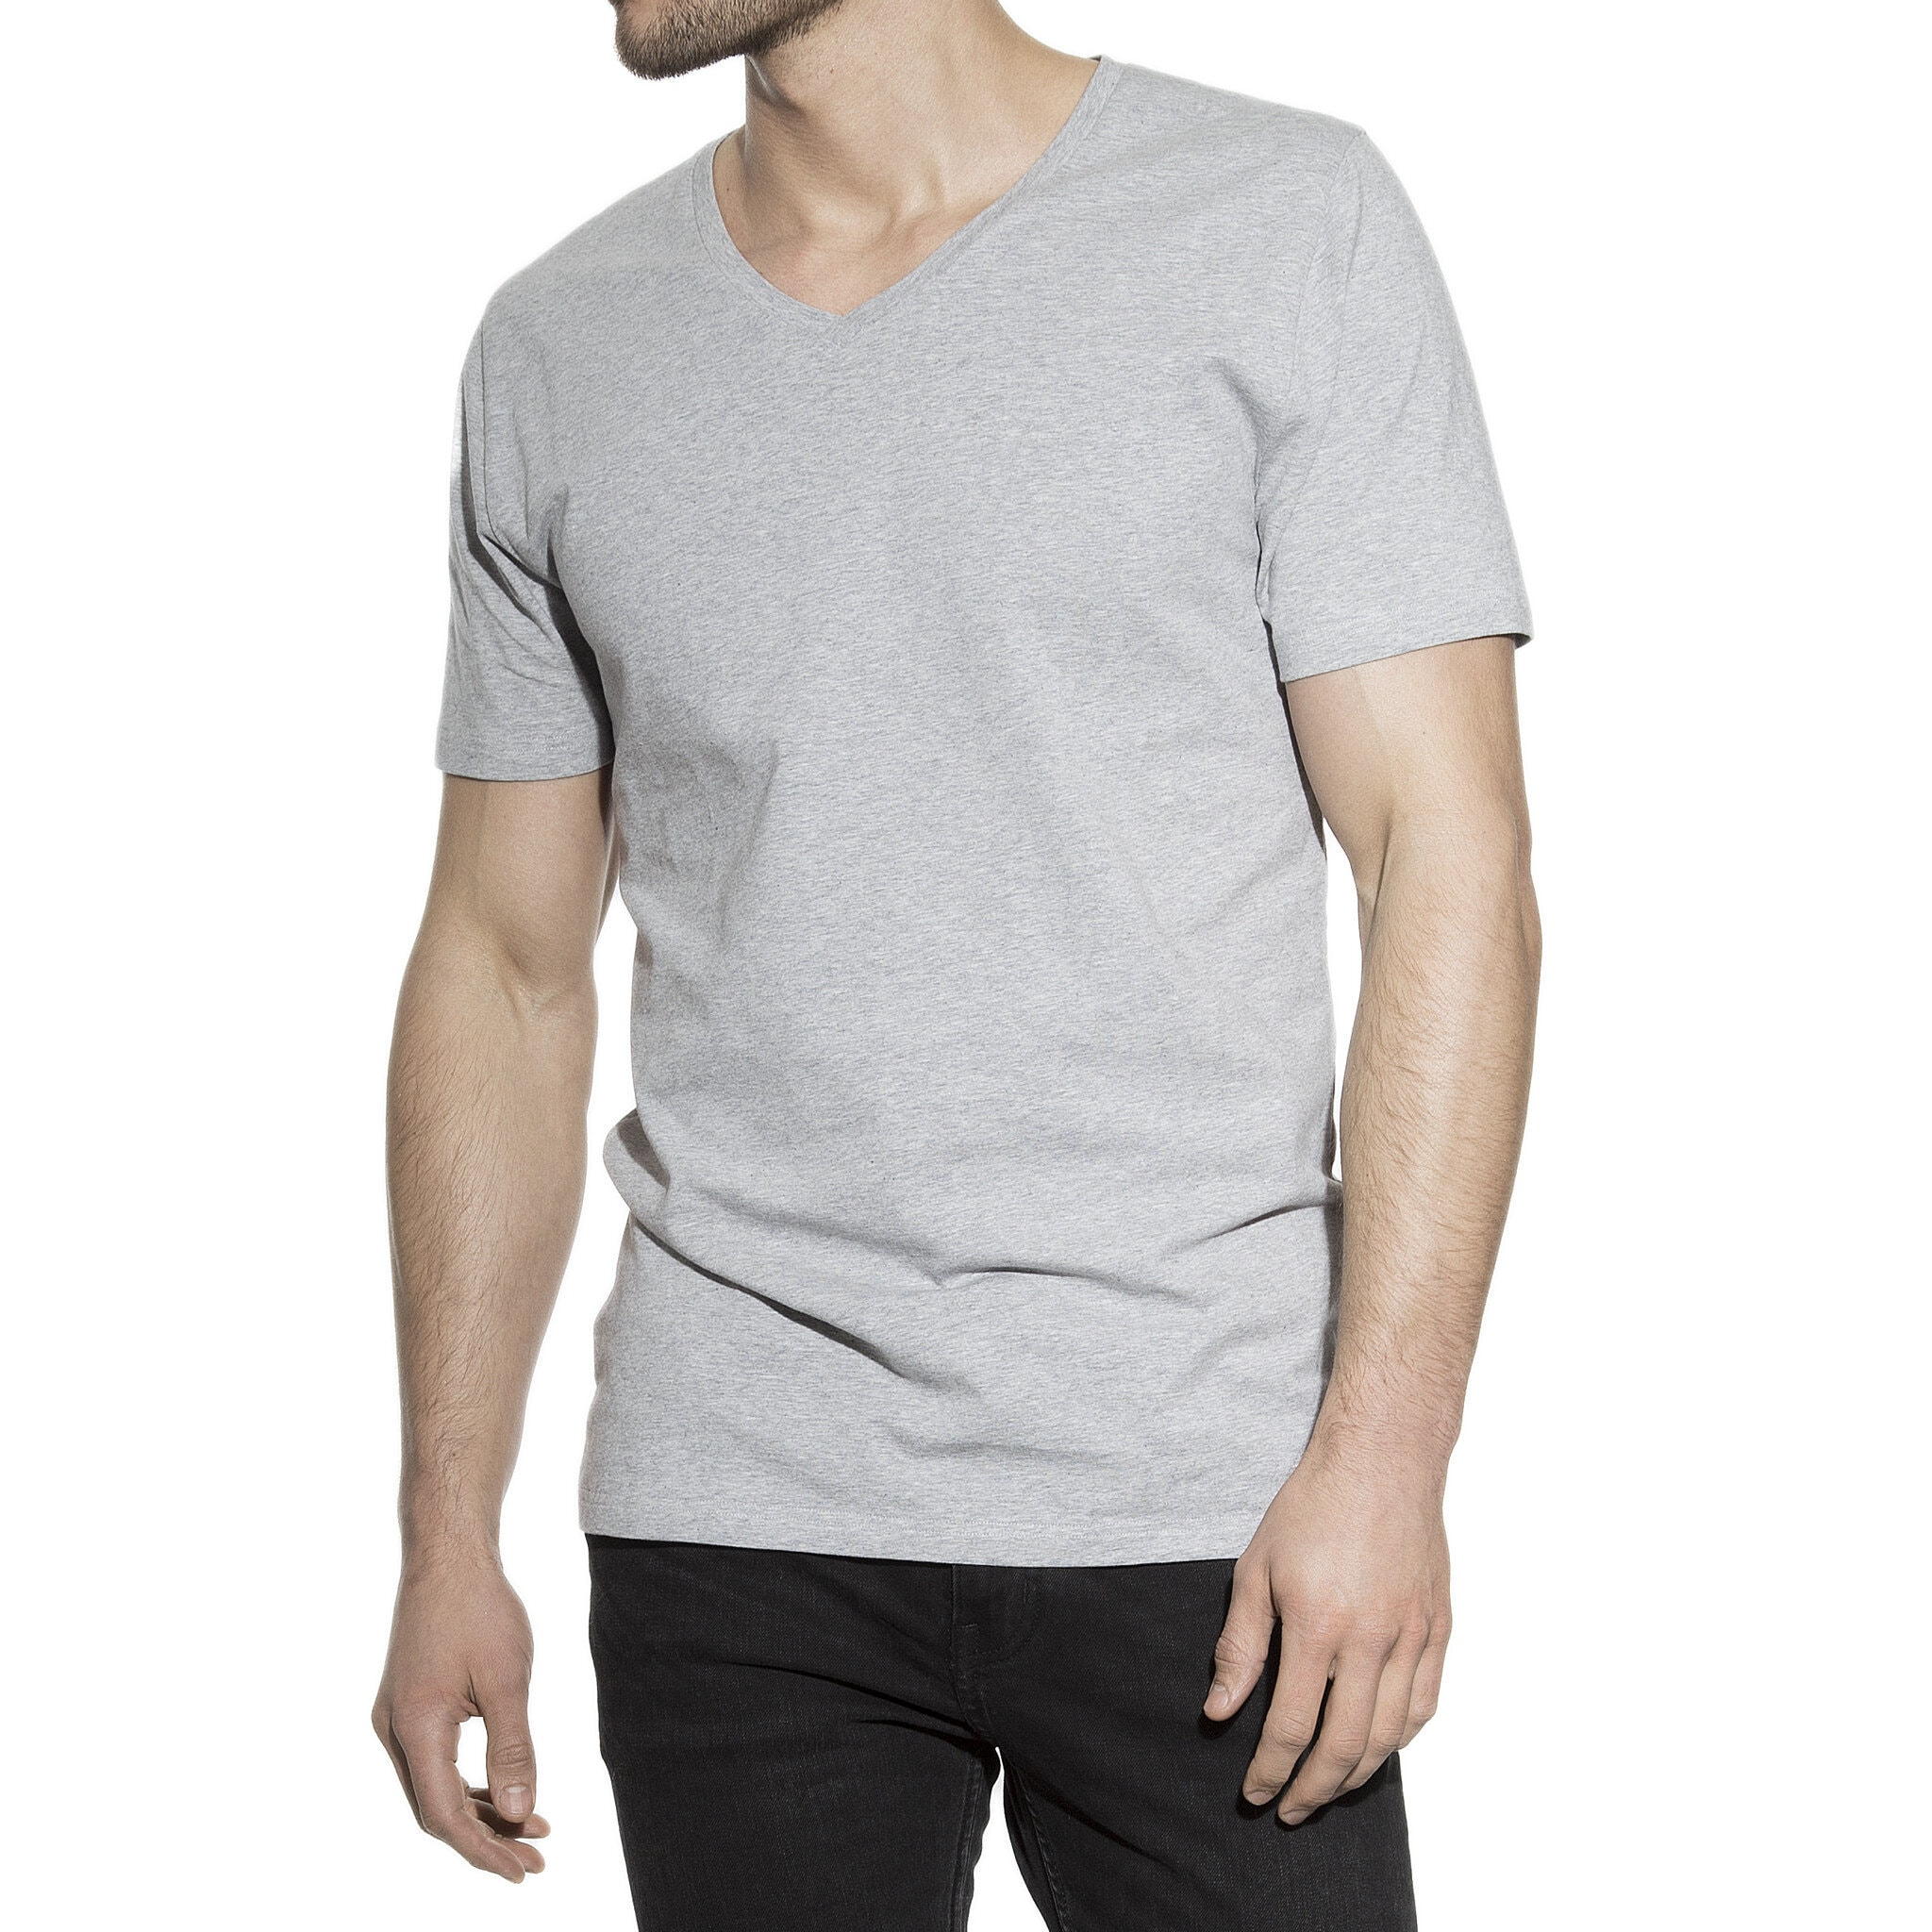 102203_Man_V-Neck_grey-melange_1